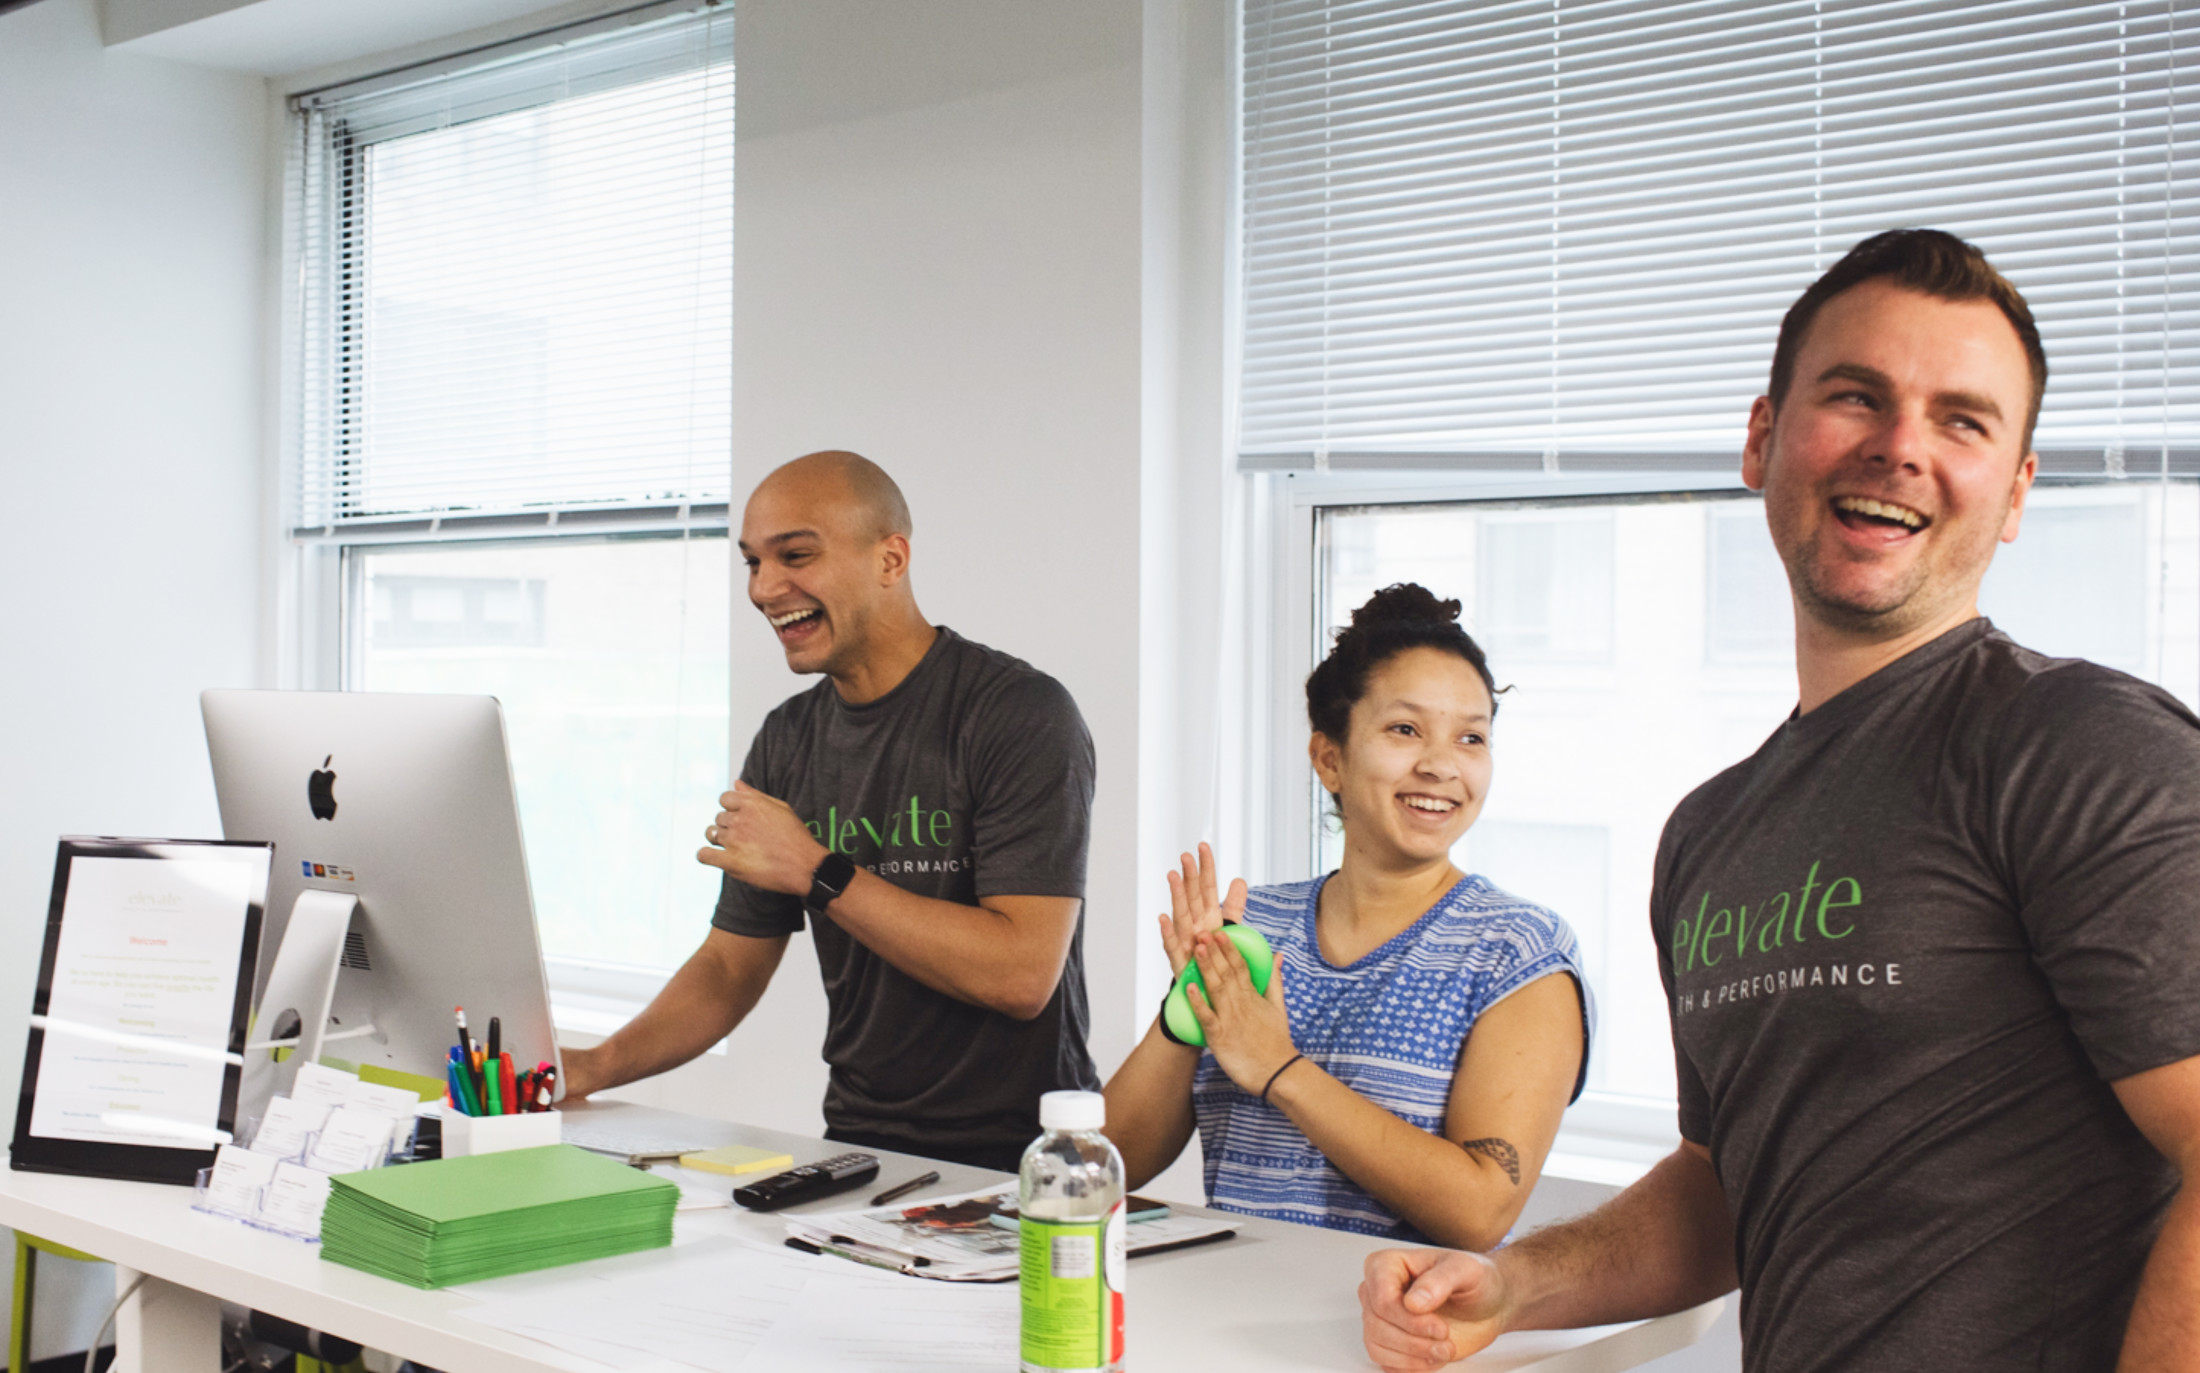 Our personal training center team focuses holistically on your wellbeing